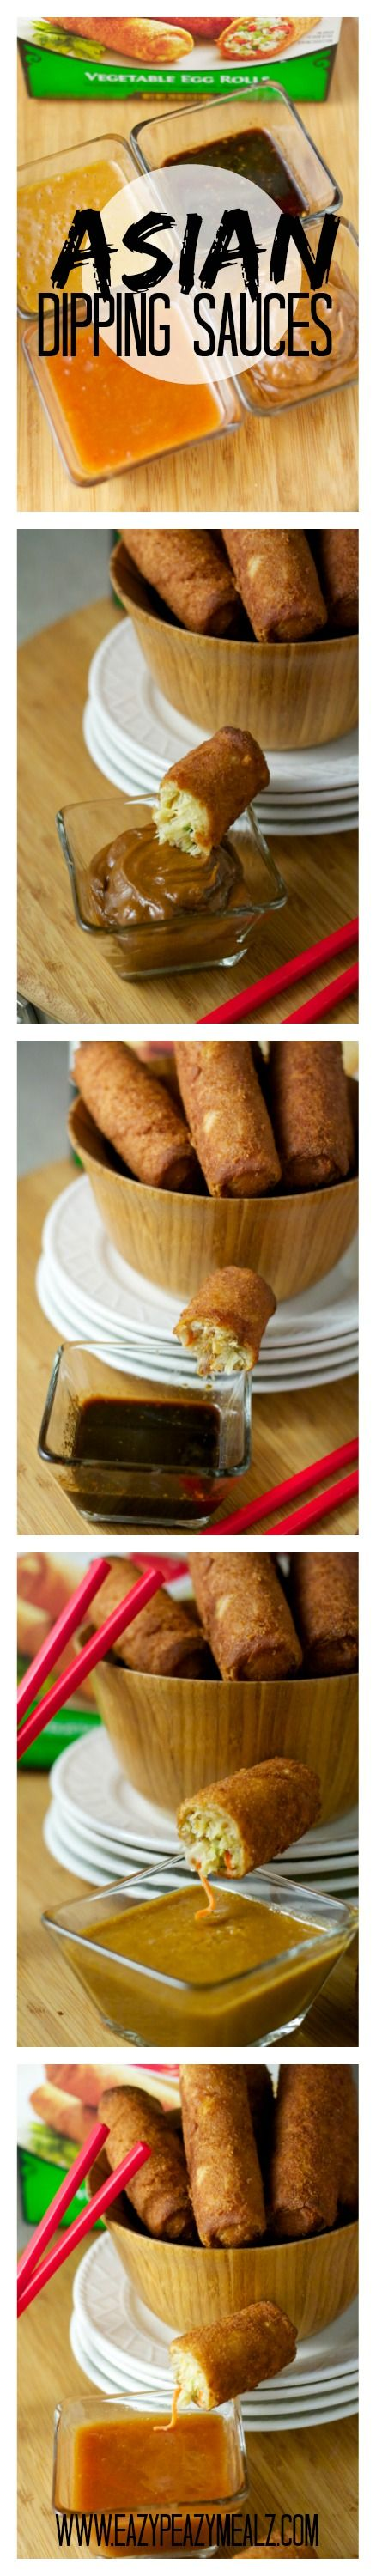 Asian Dipping Sauces: perfect set of dipping sauces, for an egg roll or spring roll dipping bar! - Eazy Peazy Mealz